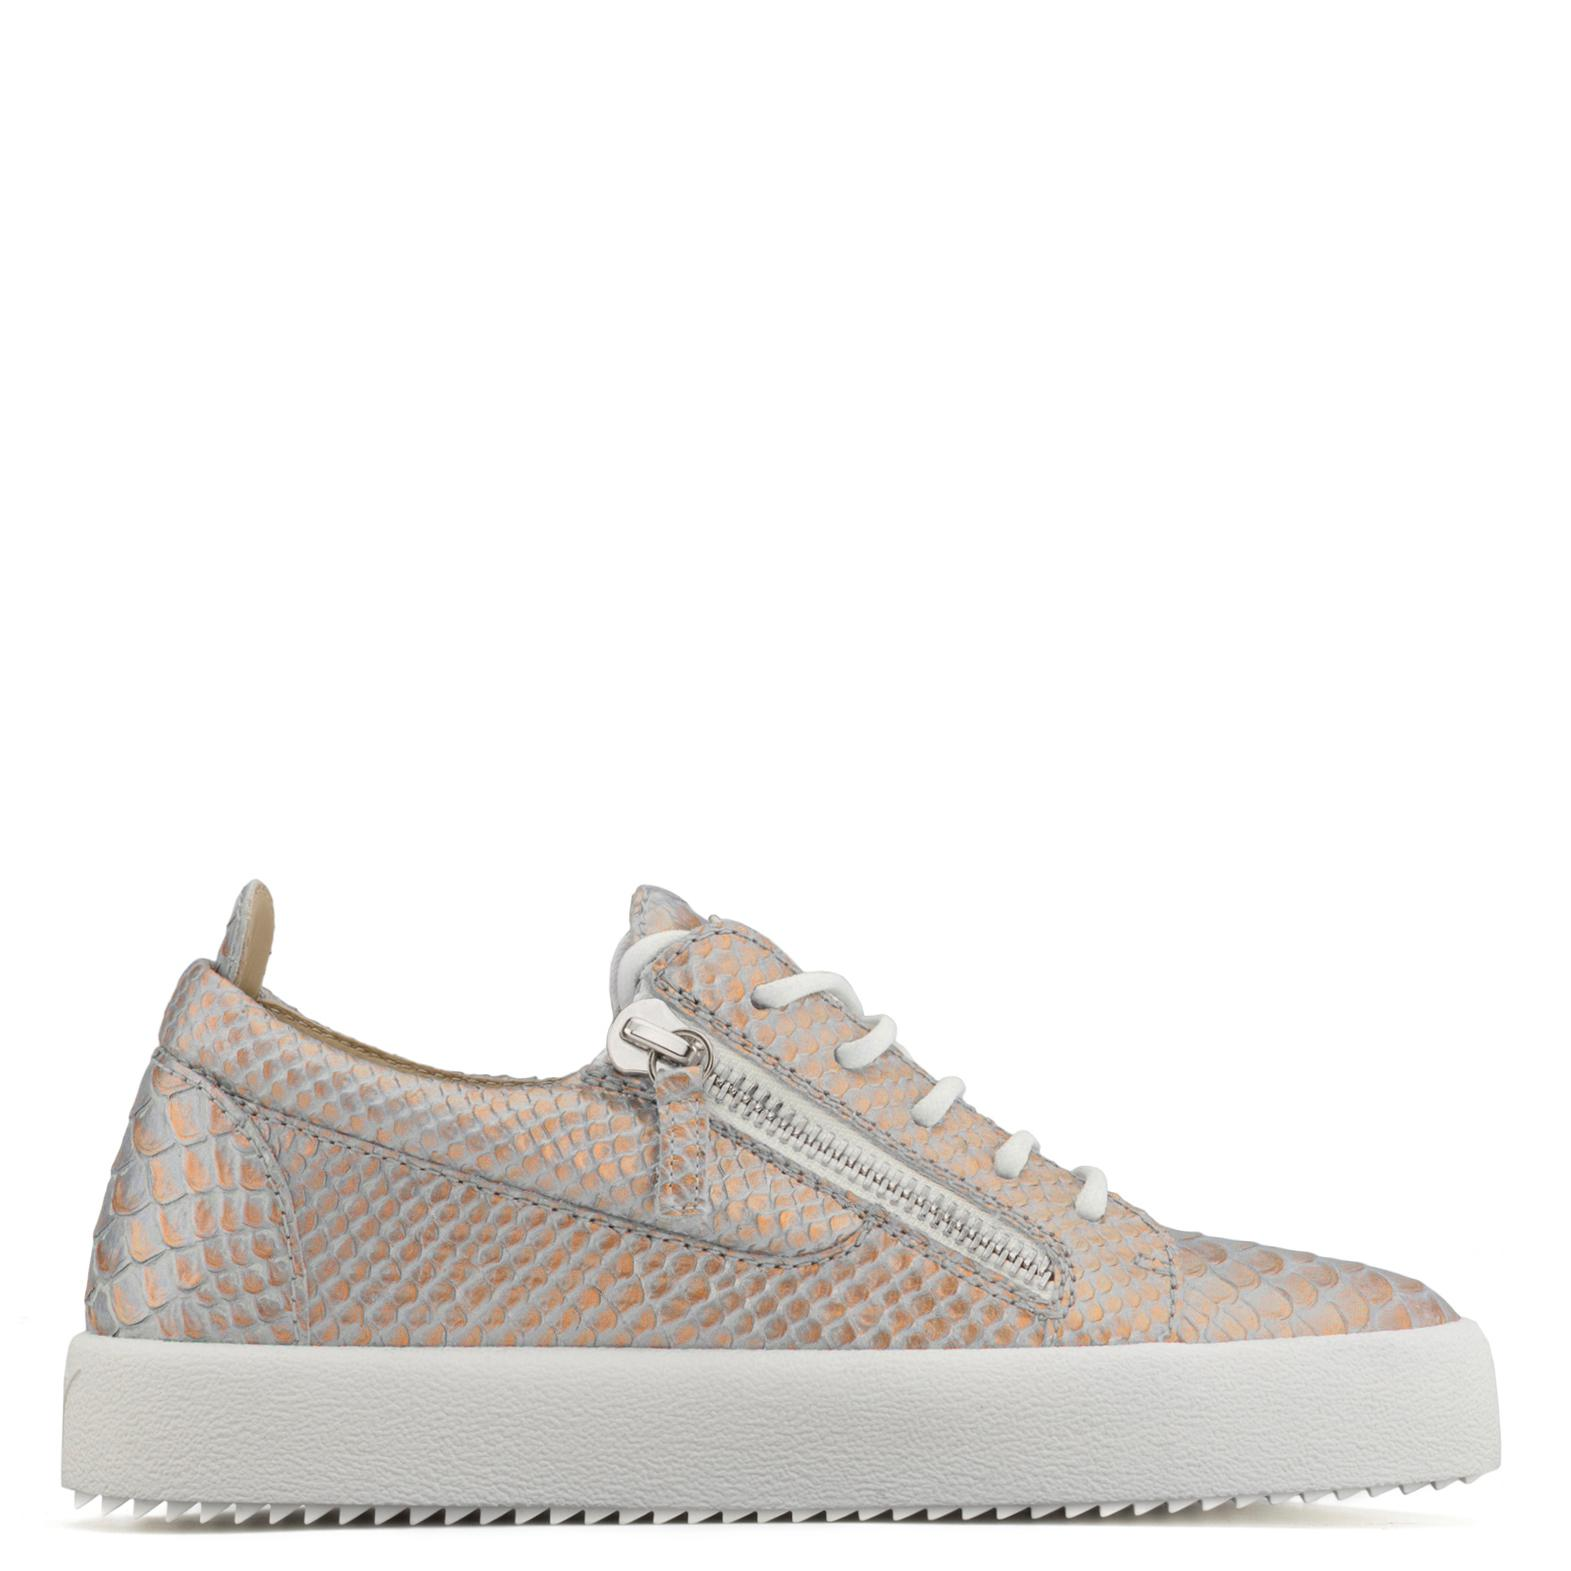 Giuseppe Zanotti Light python-embossed pearlized low-top sneaker GAIL dgm8qxevw